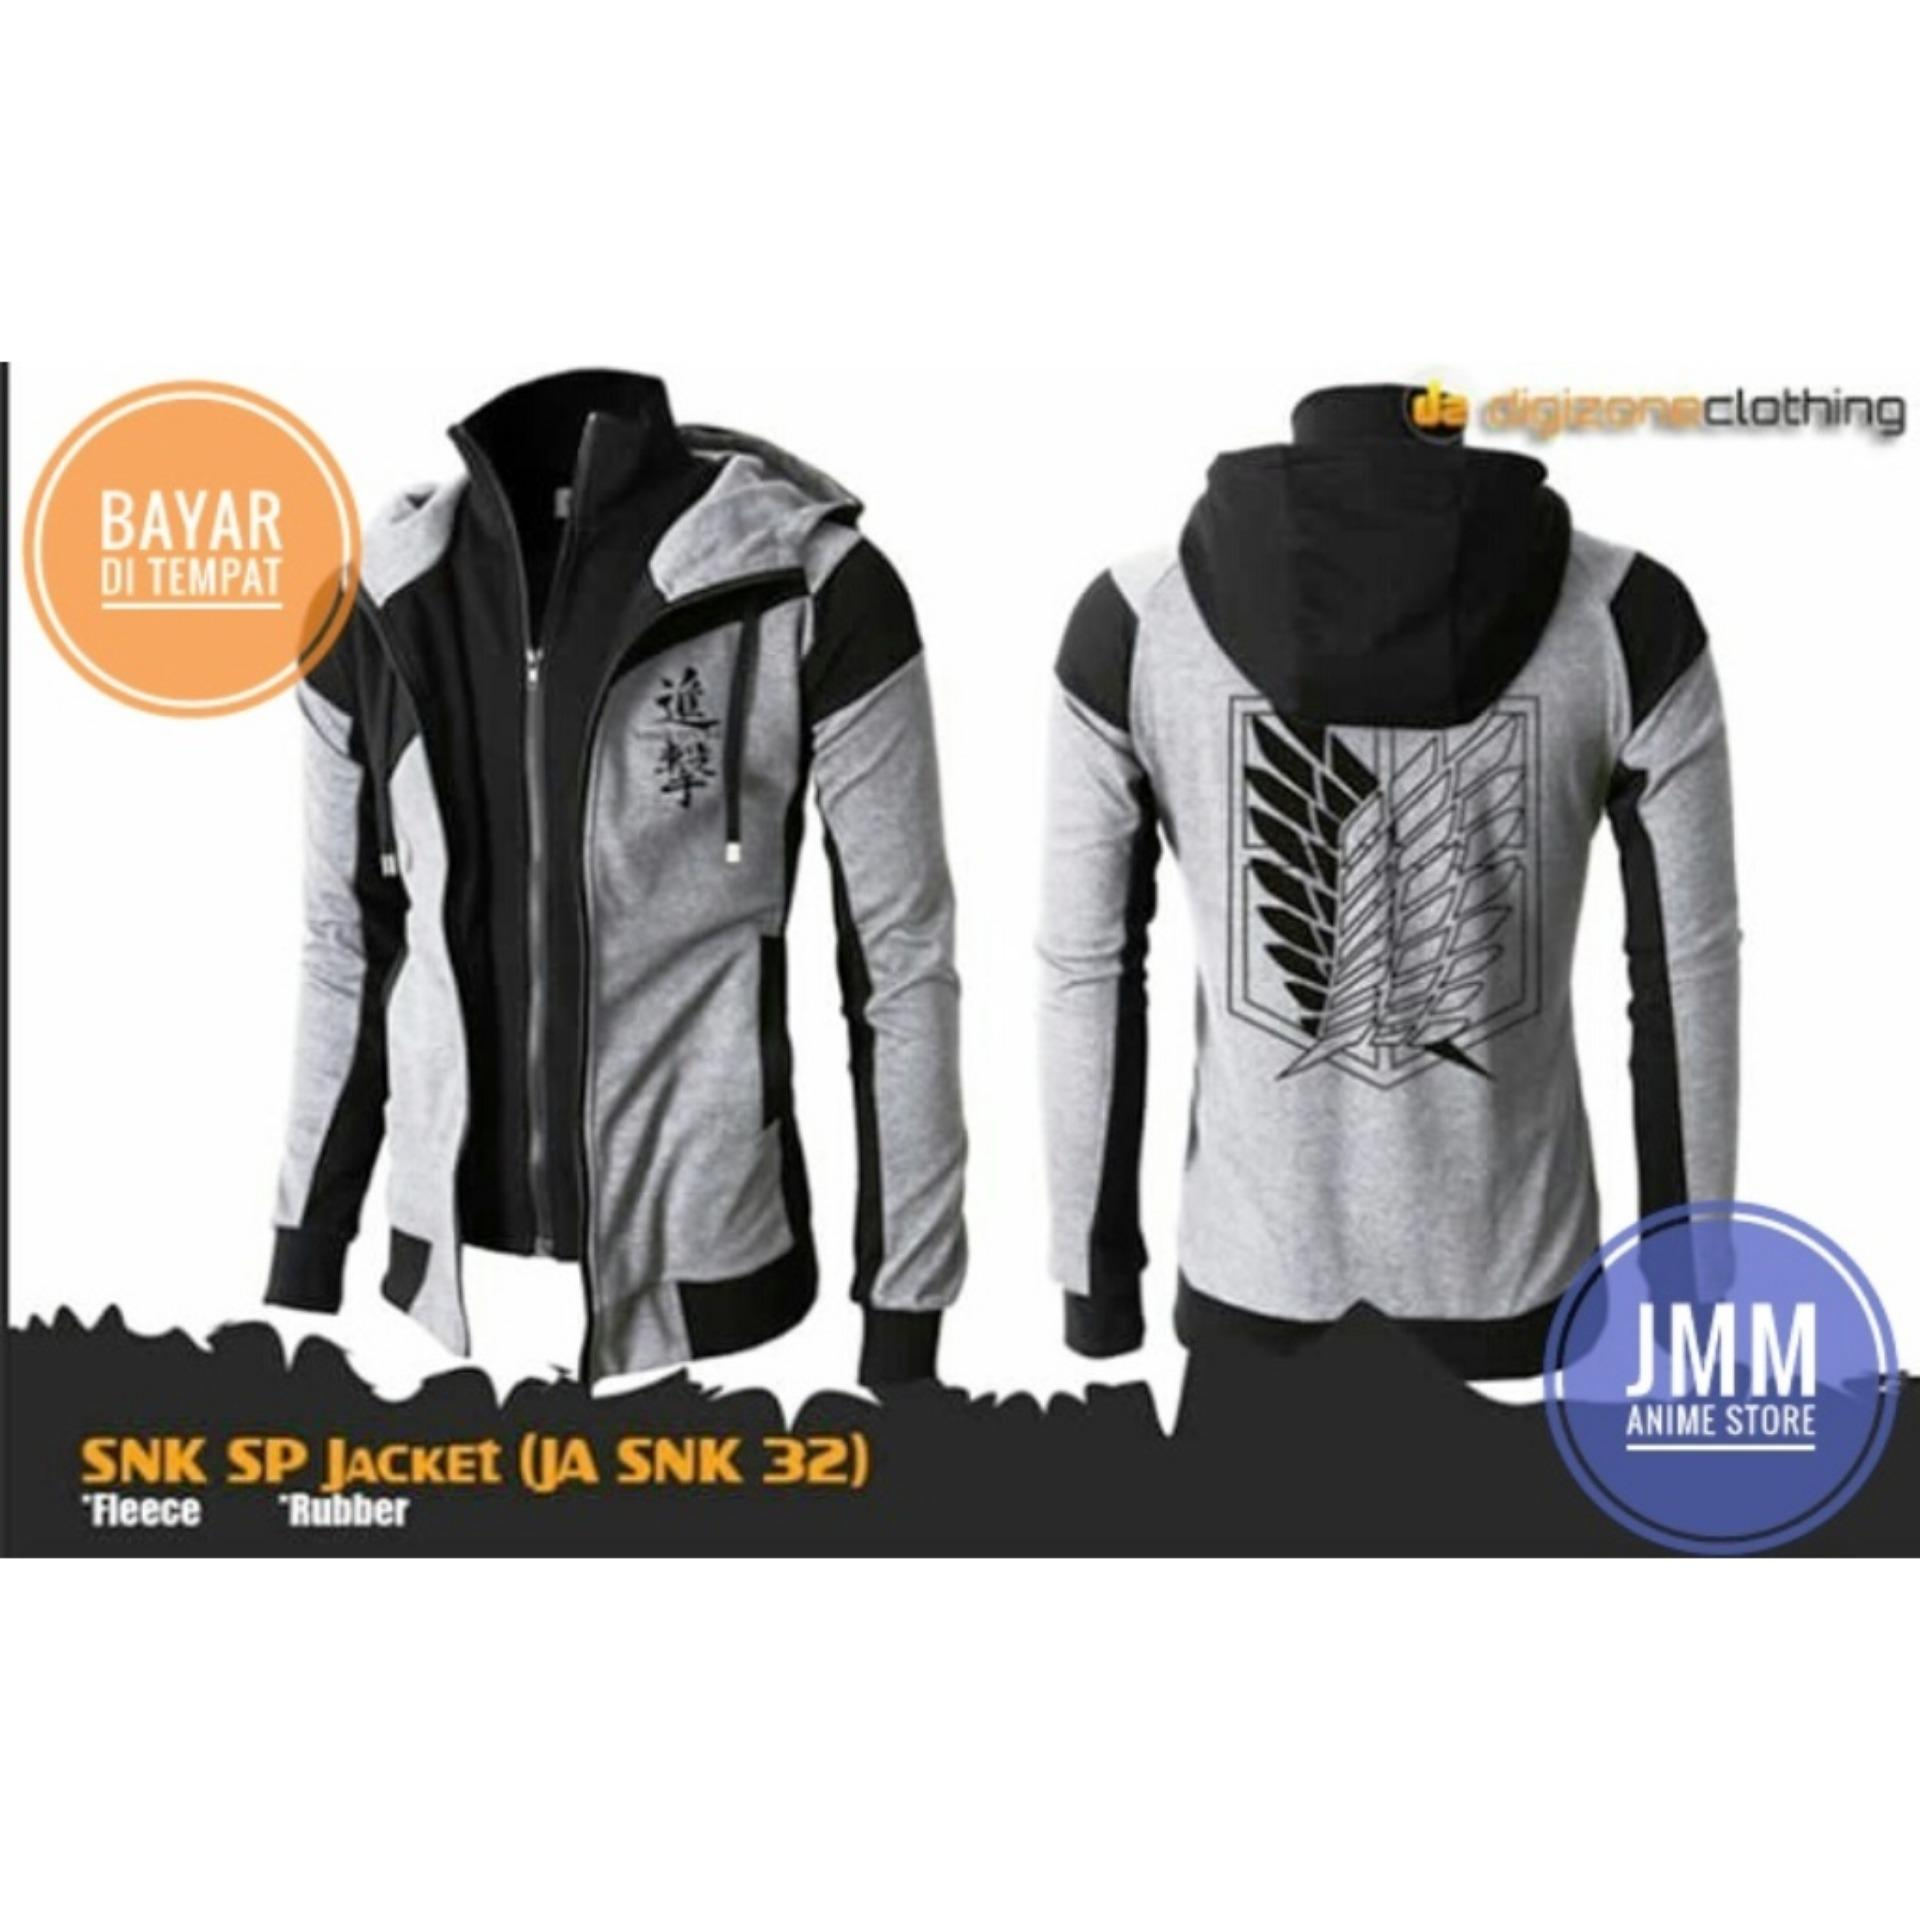 Spesifikasi Jaket Anime Attack On Titan Double Zipper Grey Black Hoodie Best Seller Murah